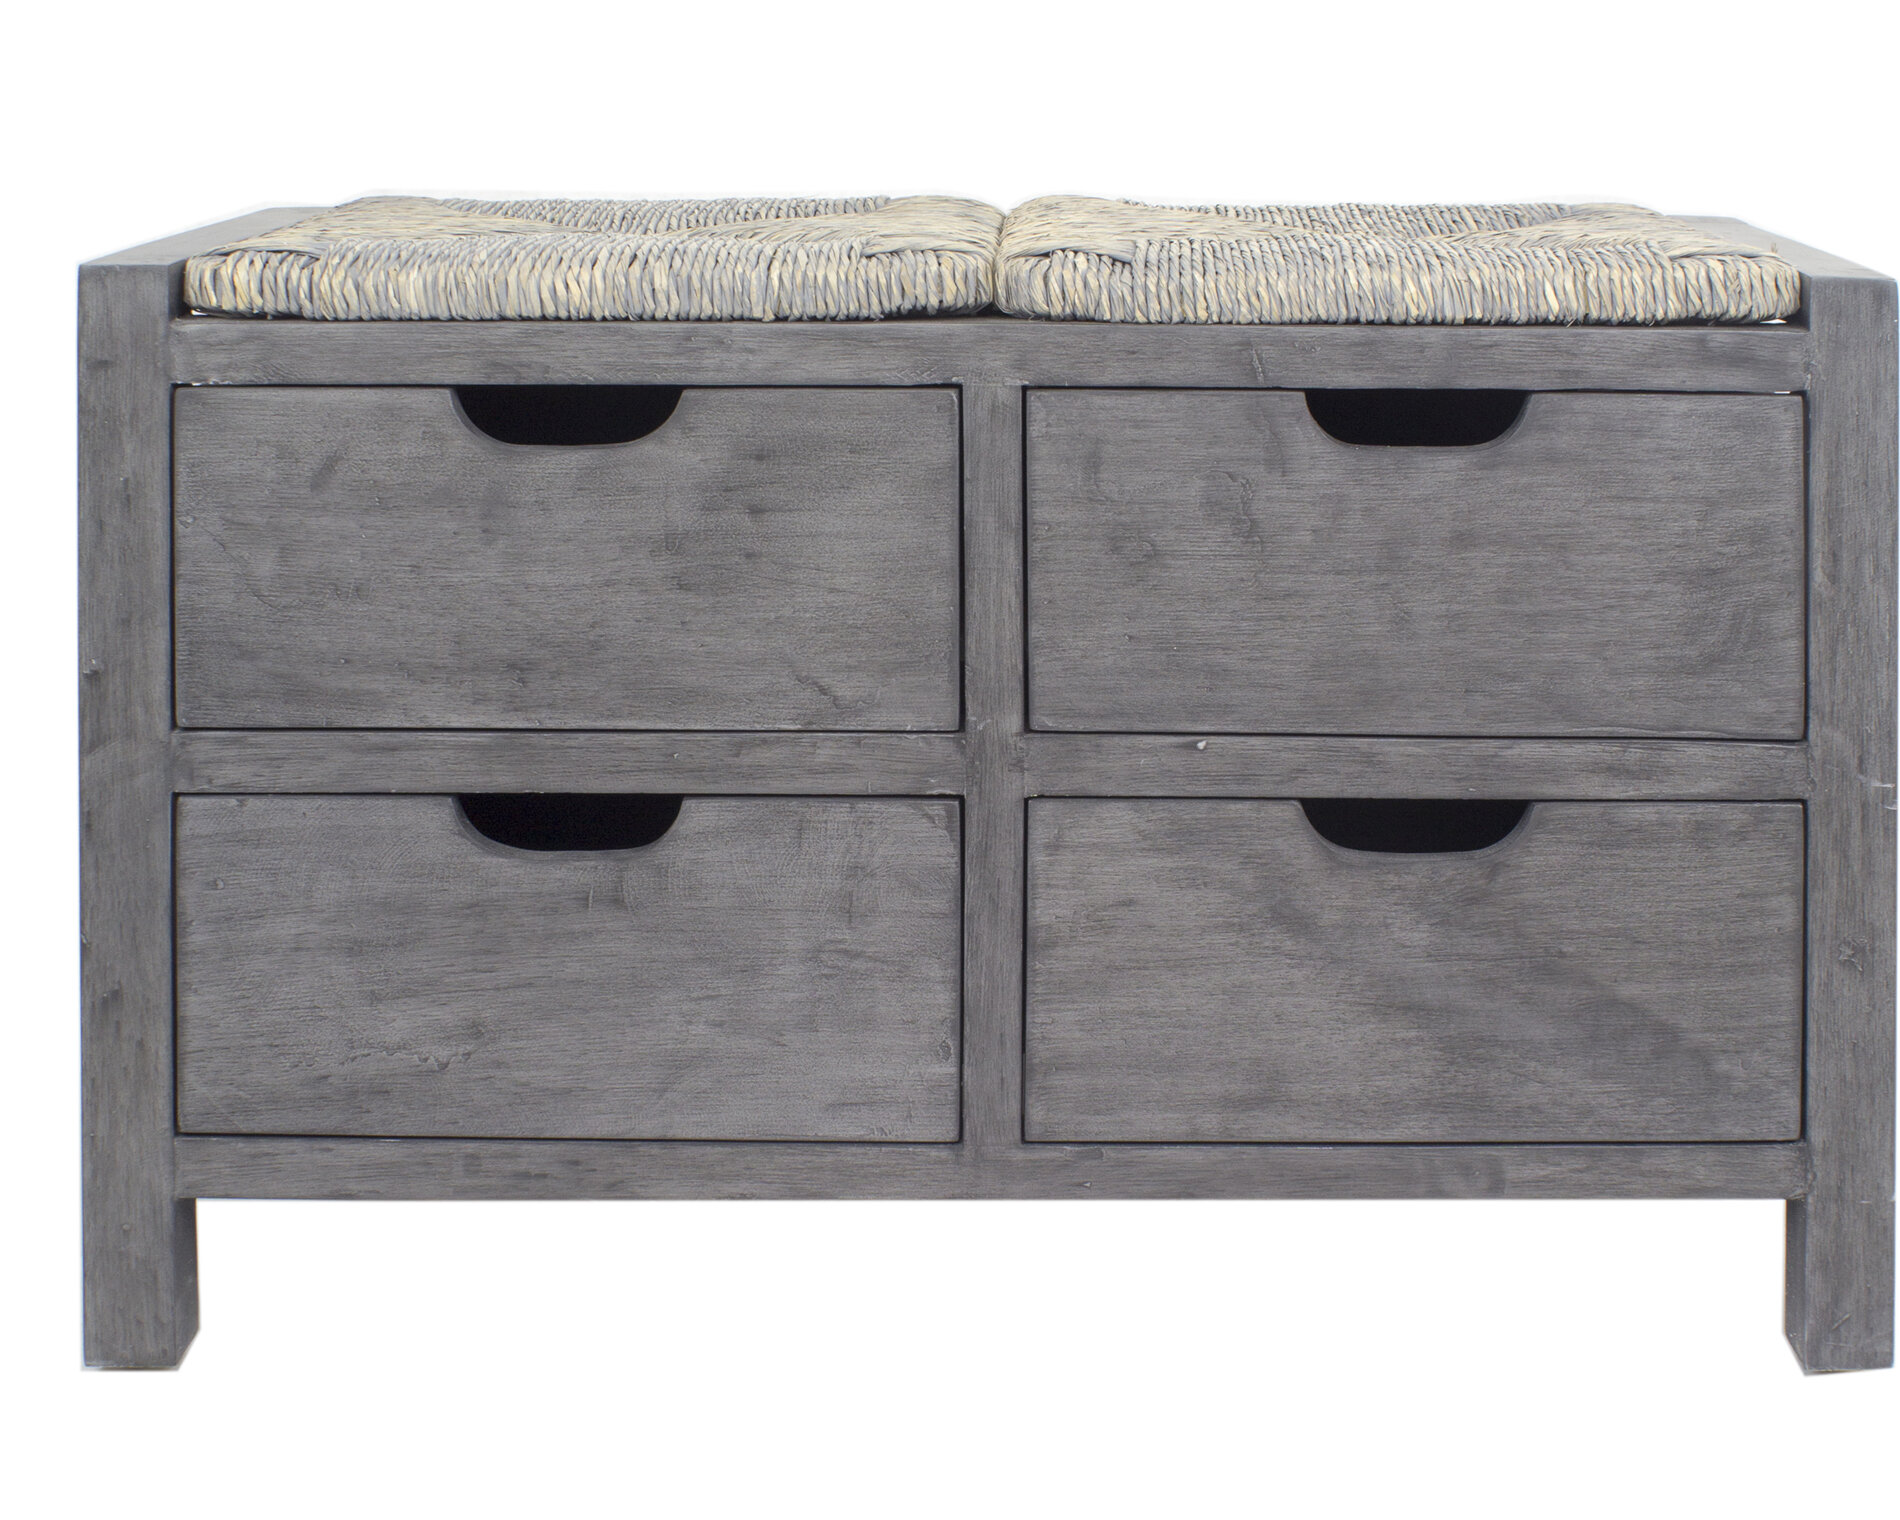 Gearhart Wood Storage Bench